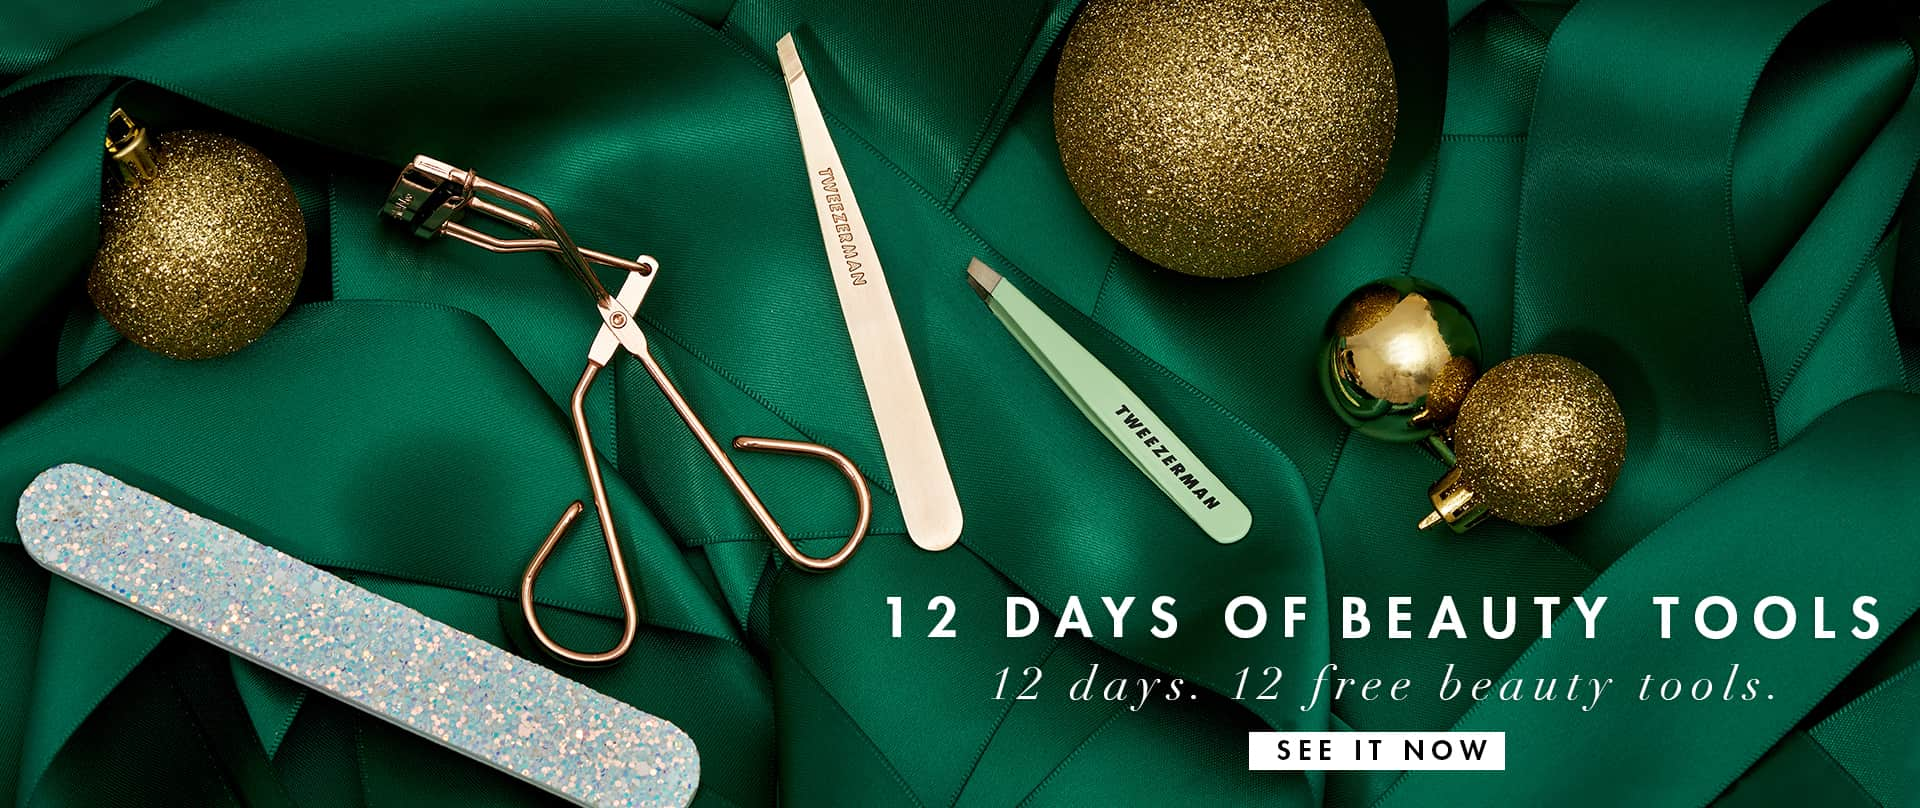 12 Days of Beauty Tools